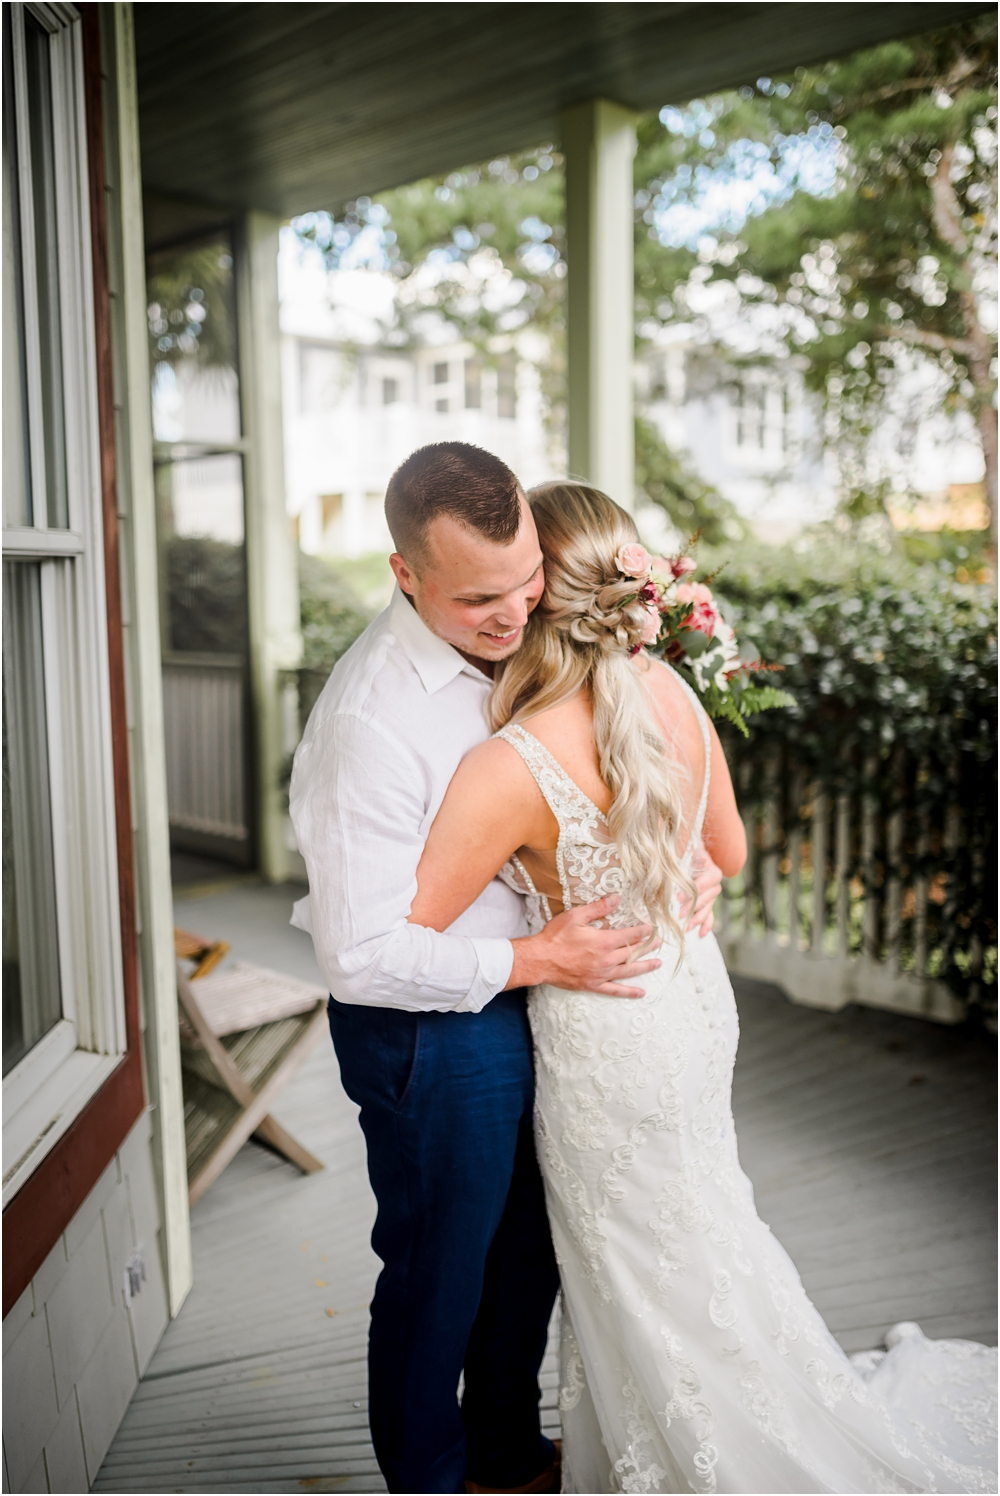 mcglothlin-wedding-kiersten-stevenson-photography-30a-panama-city-beach-dothan-tallahassee-(52-of-145).jpg